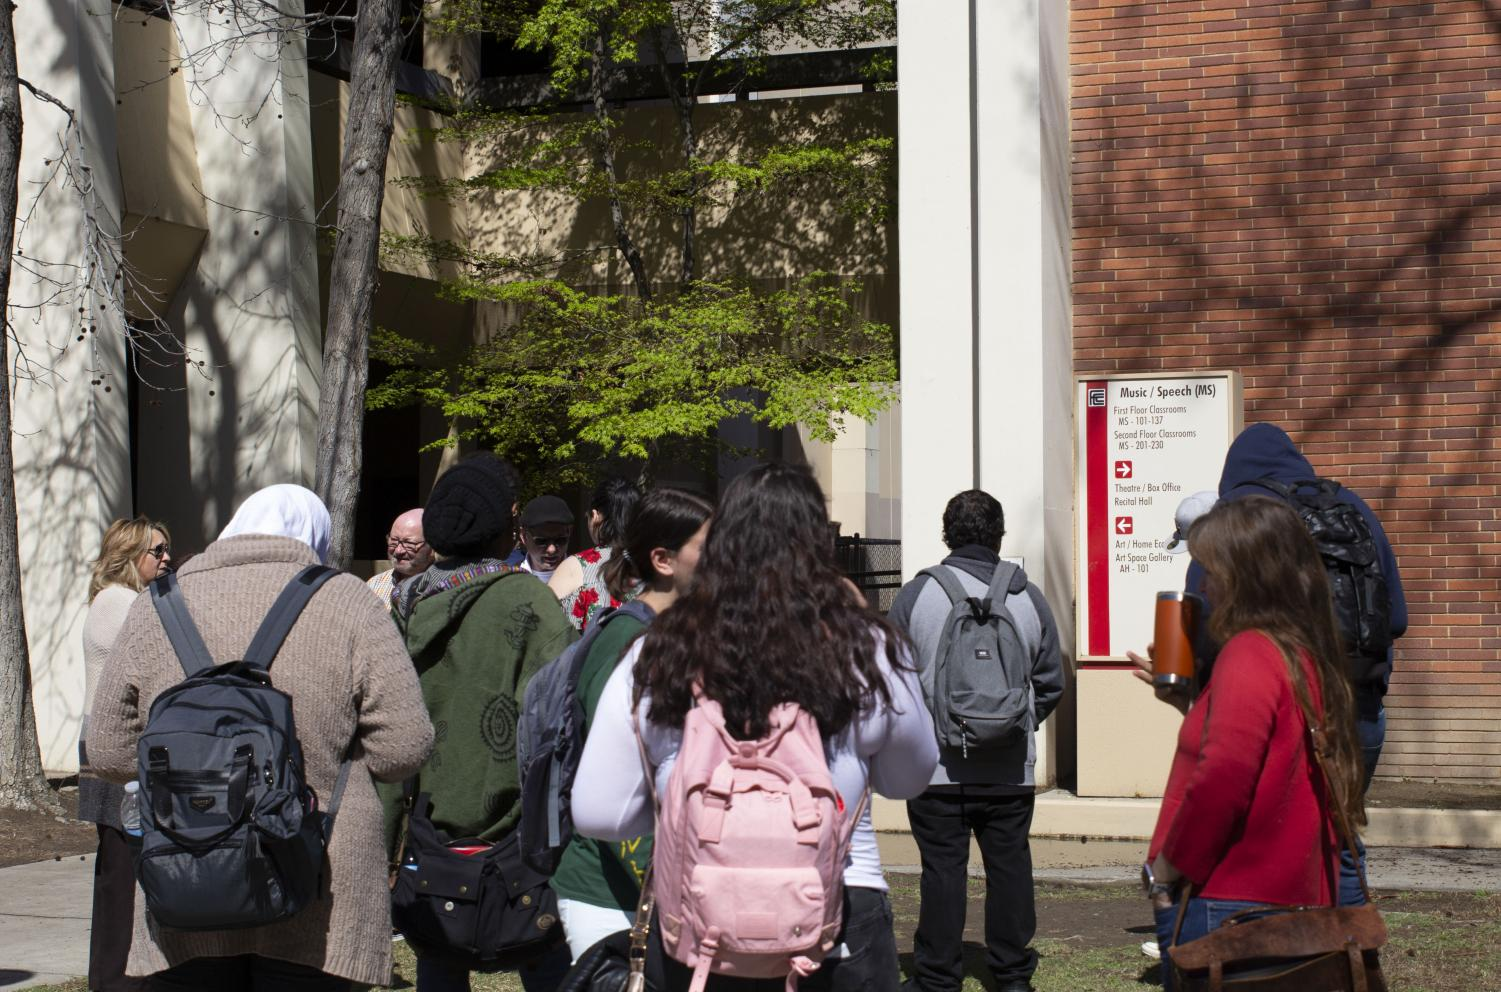 Faculty+and+students+gather+outside+the+Music%2FSpeech+building+following+a+potential+gas+leak+which+prompted+an+evacuation+shortly+after+noon+on+Wednesday%2C+March+13.